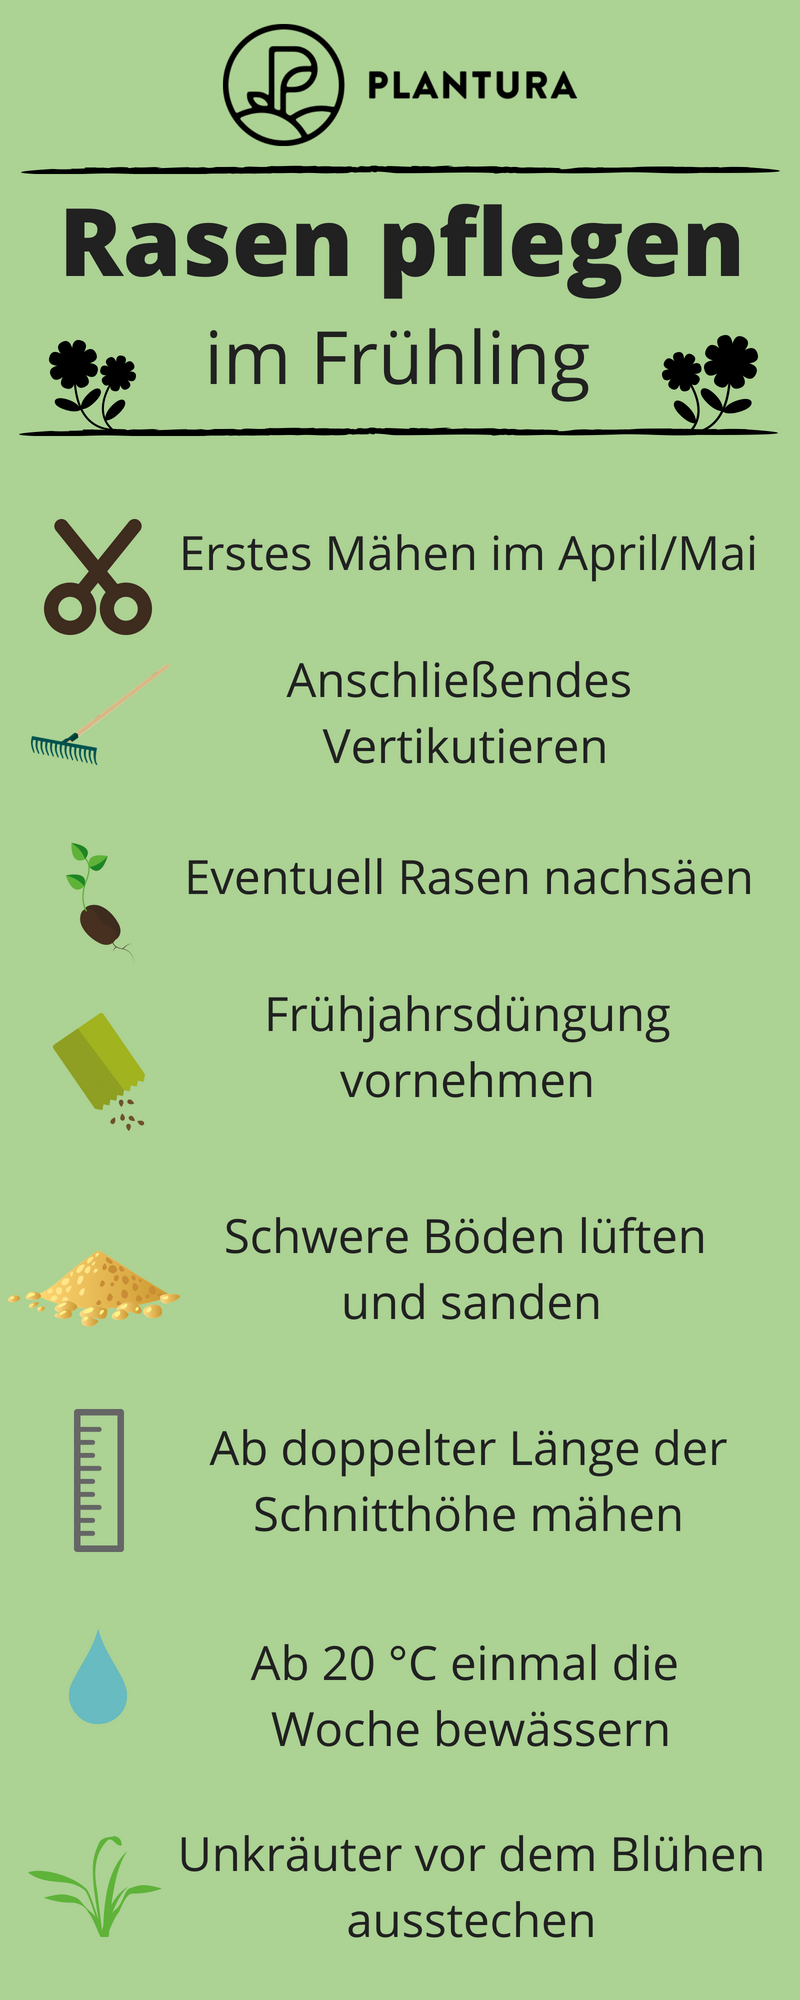 Lawn care all year round: what is important and when - Plantura There are many things you can do to maintain the perfect lawn. But at what time of the year is it best to subject the lawn to which maintenance measure? More about this at Plantura! #race #spring #maintenance  Informations About Rasen-Pflege rund ums Jahr: Was wann wichtig ist - Plantura Pin  You can easily use my profile to examine different pin types. Rasen-Pflege rund ums Jahr: Was wann wichtig ist - Plantura pins are as aesthet